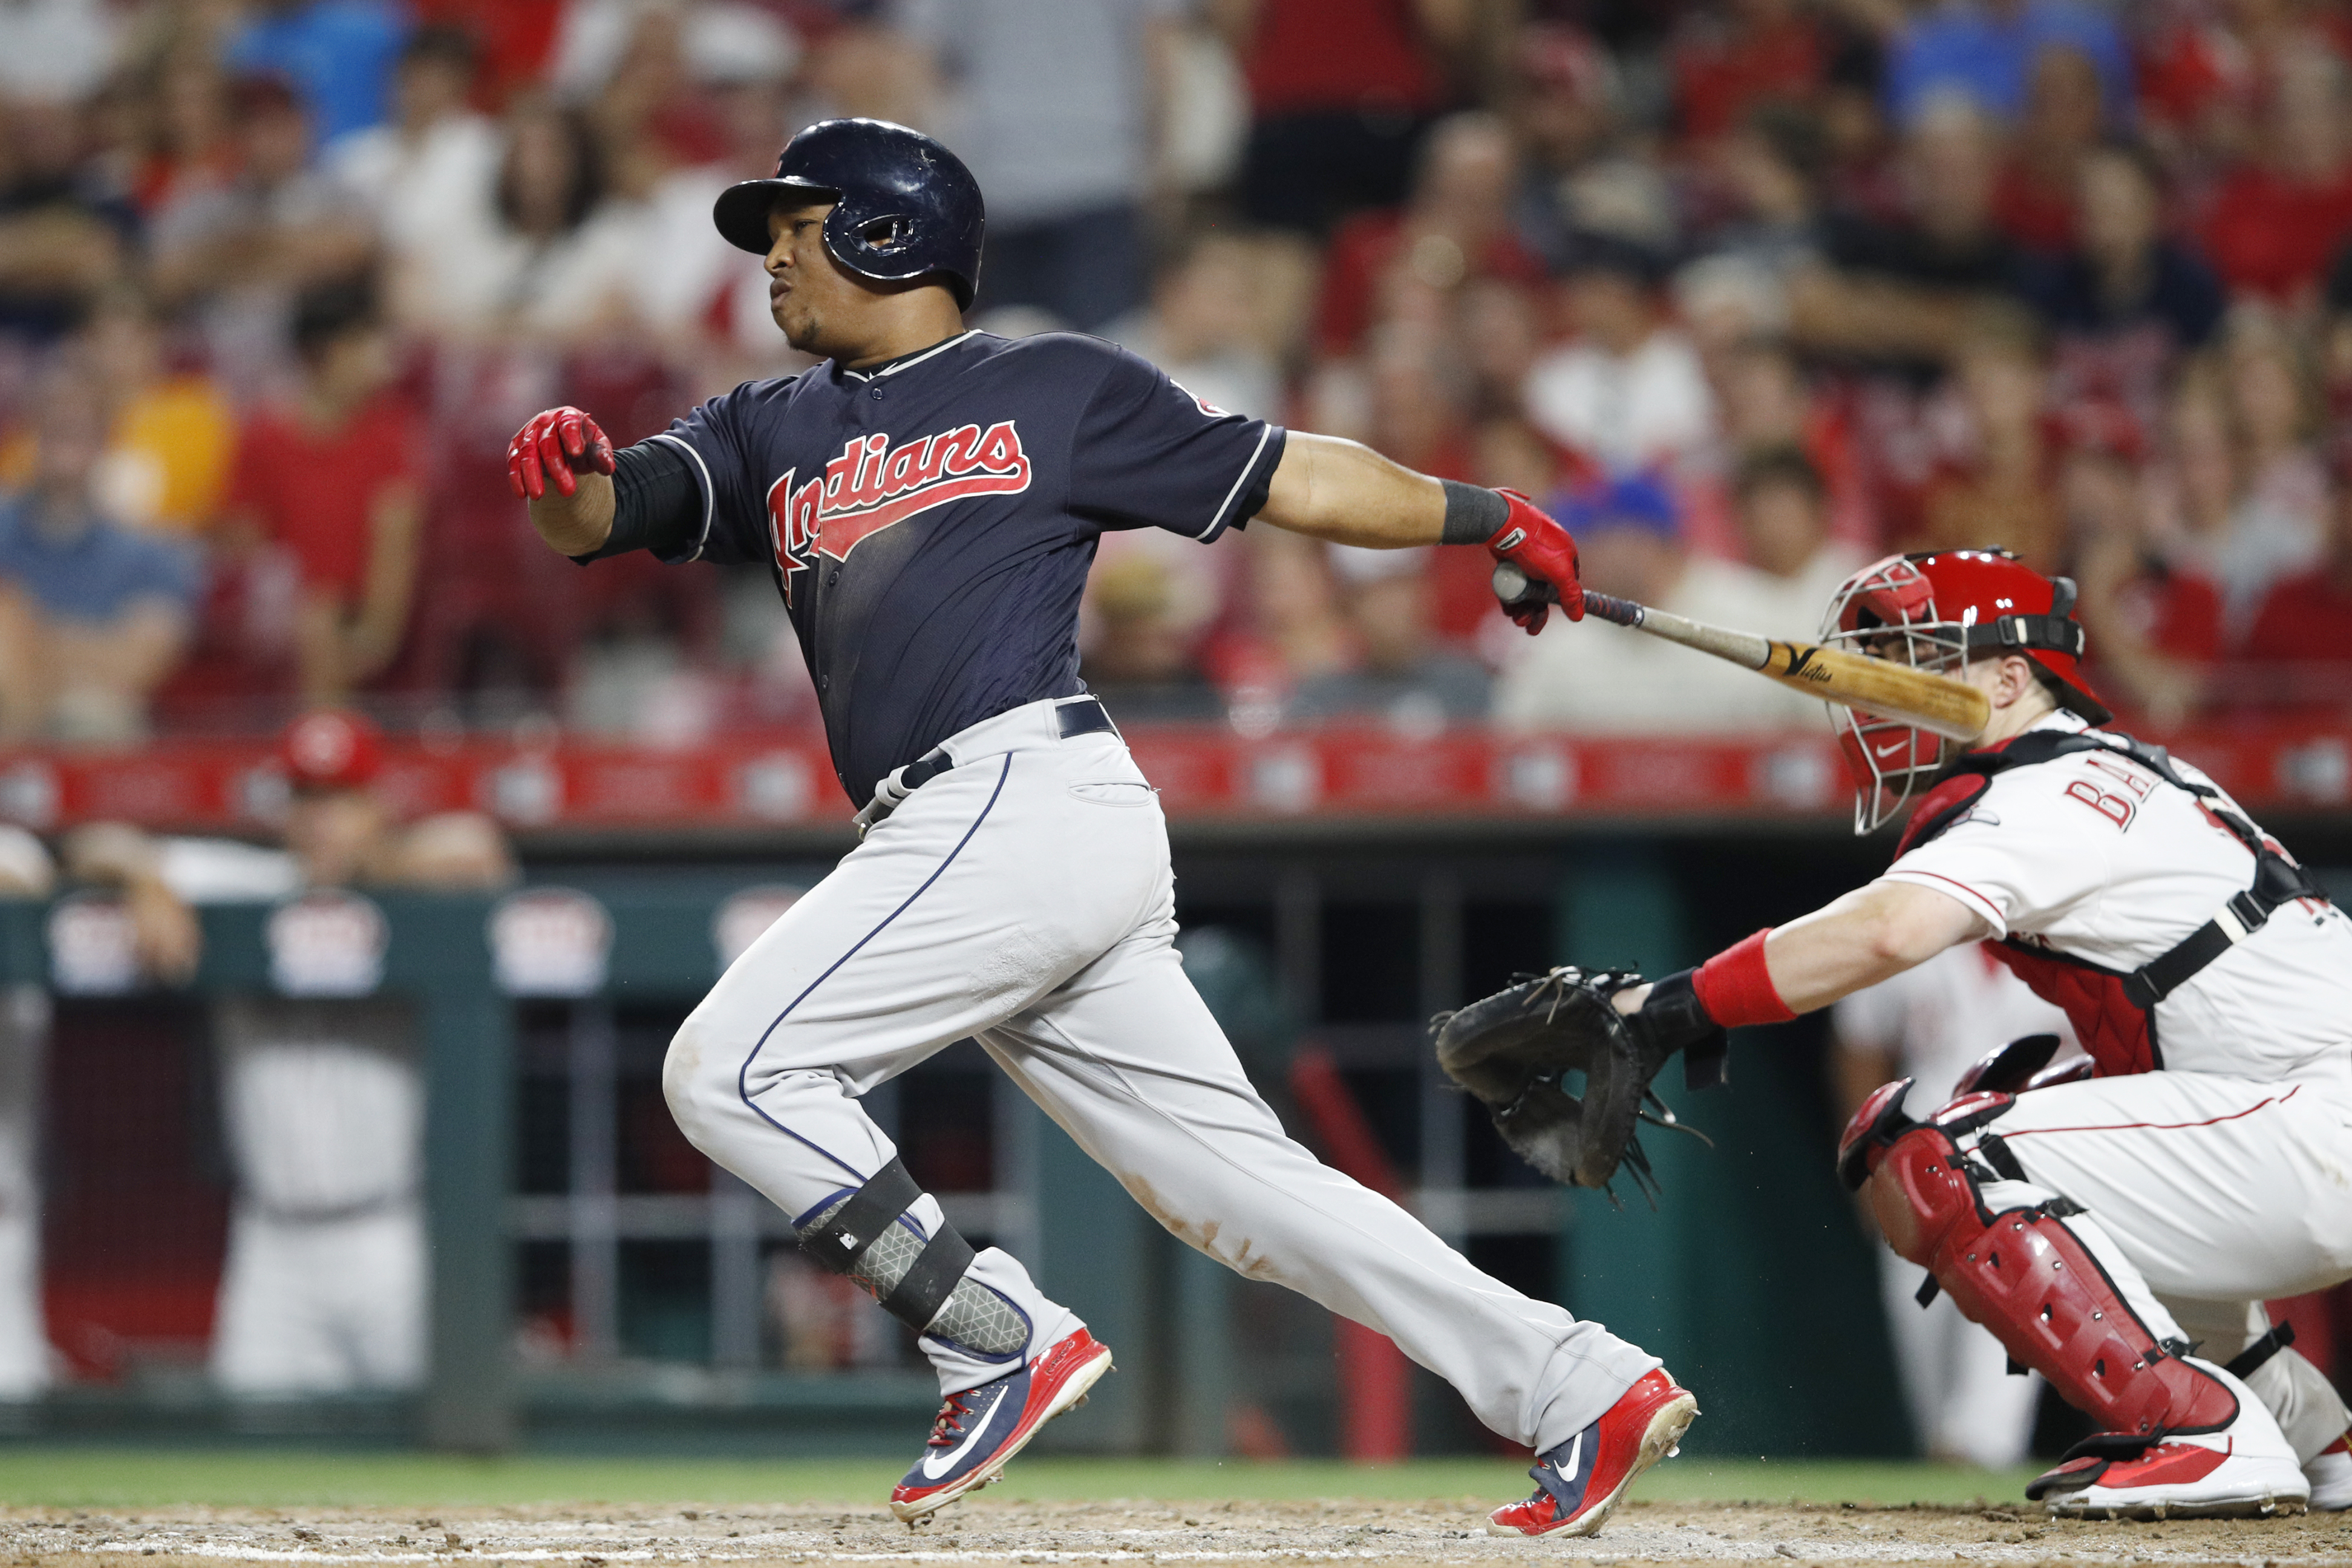 Let's size up the Red Sox' playoffs competition - The Boston